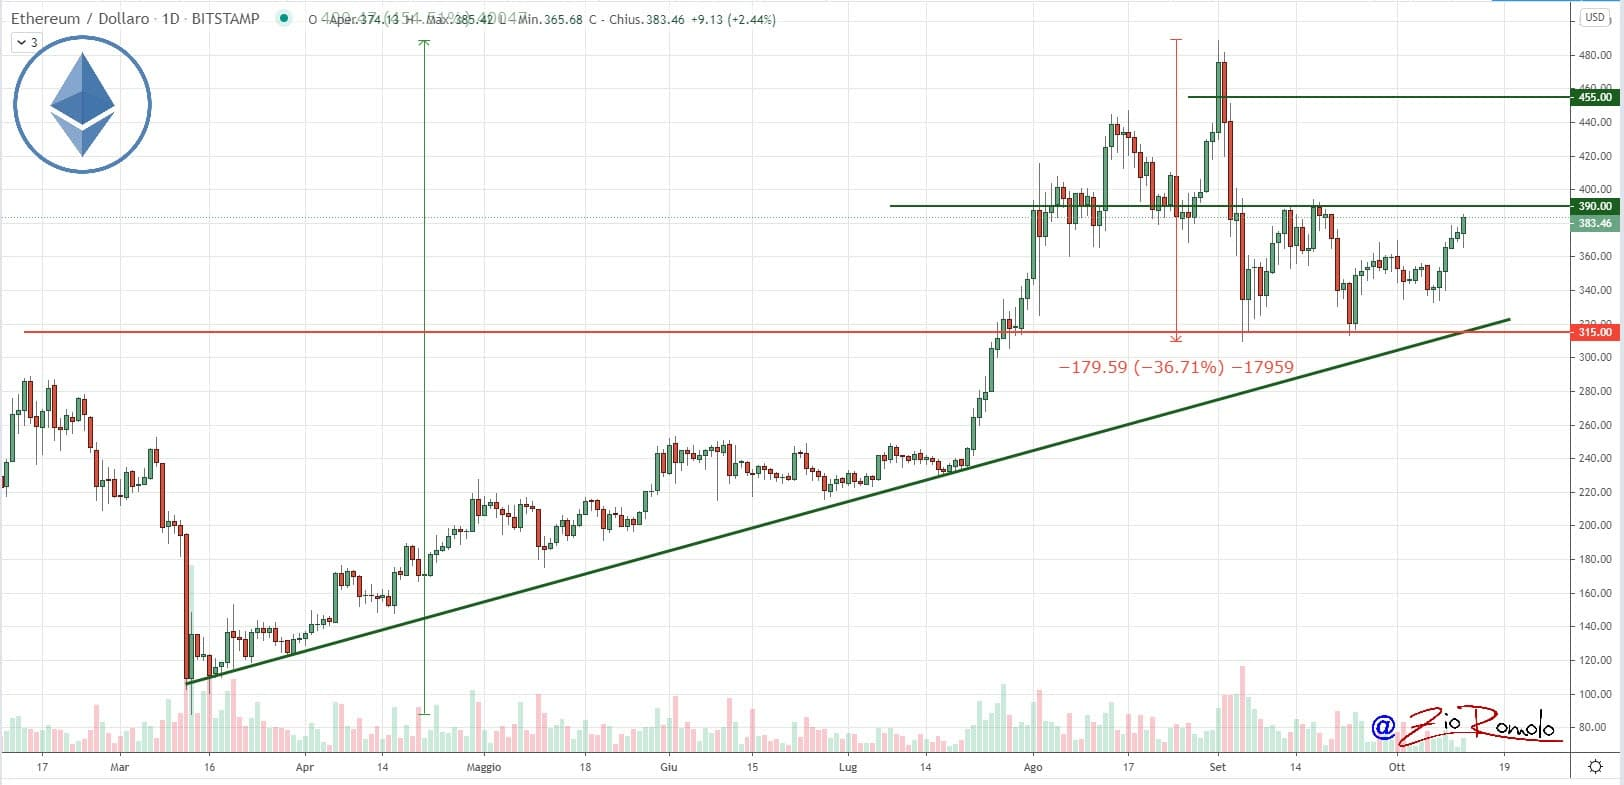 Bitcoin on the rise: value above 11,500 USD